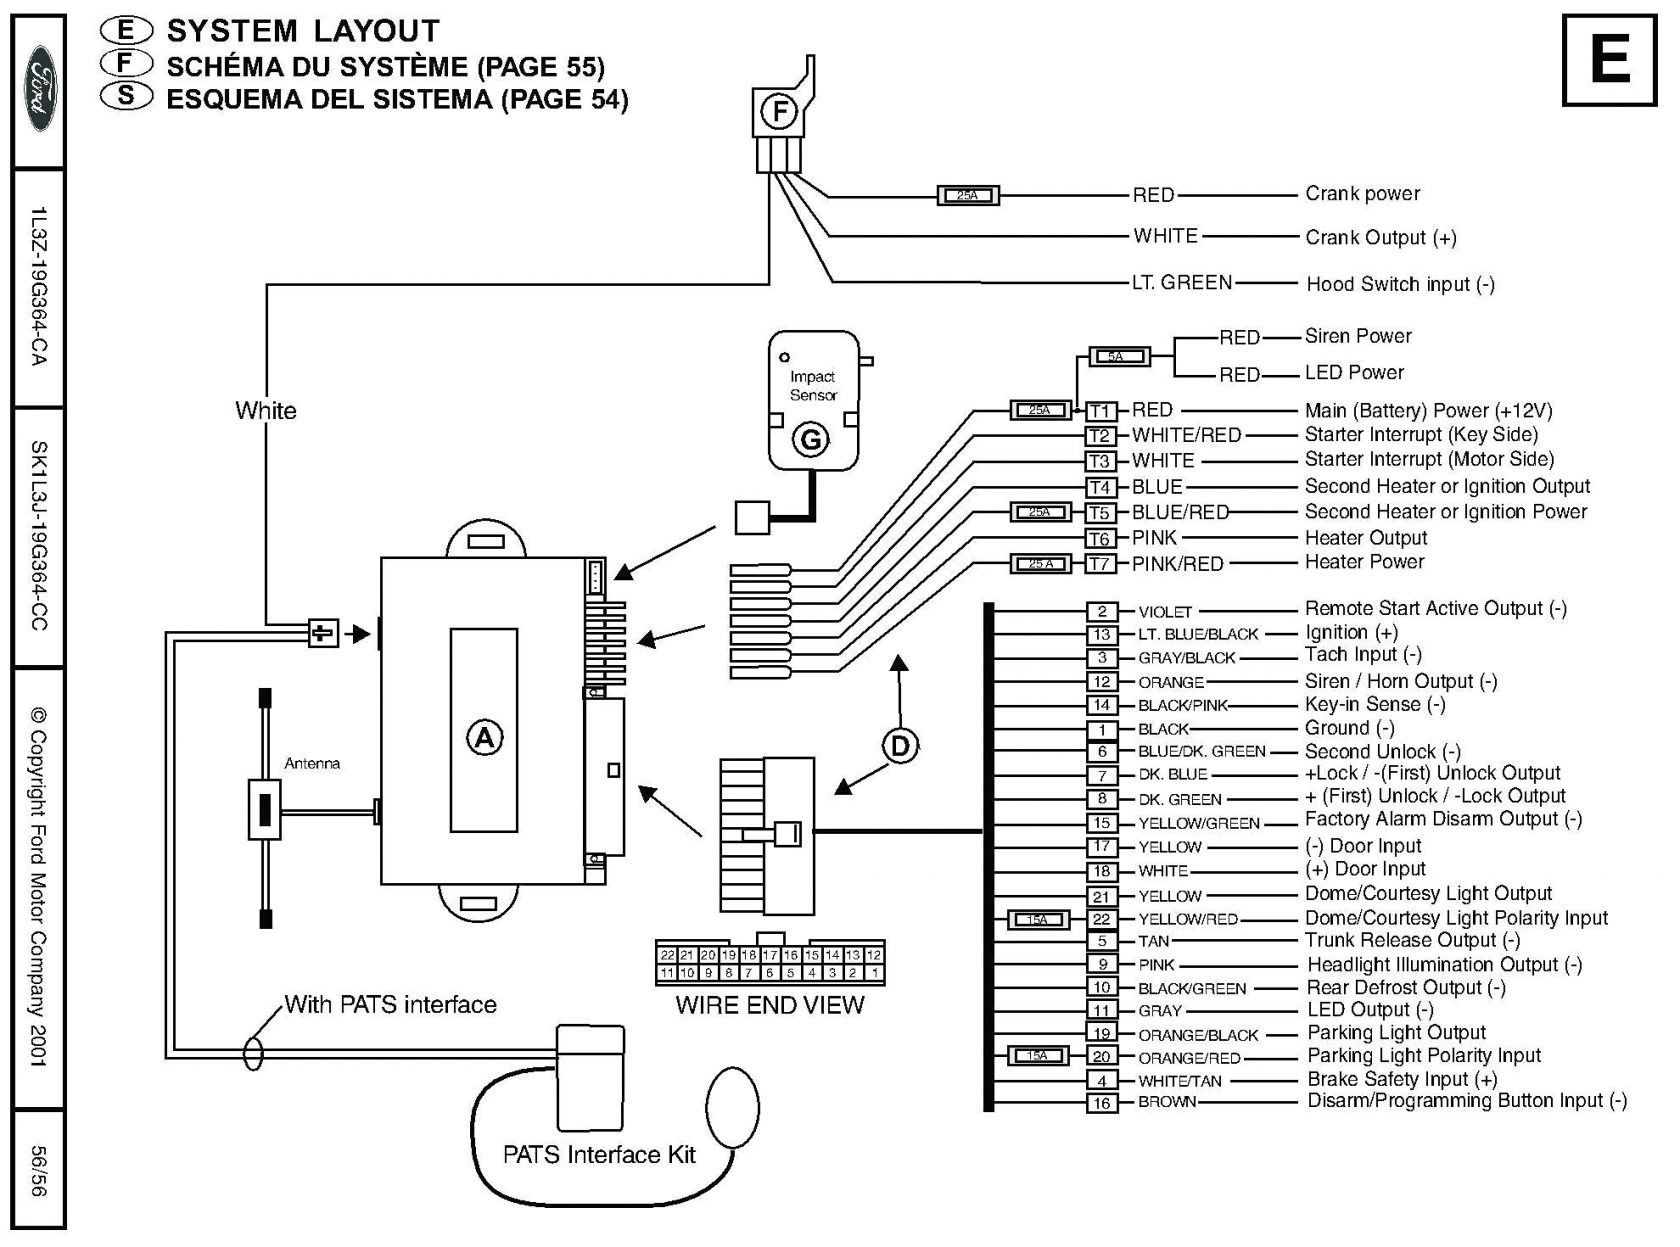 St97 Remote Starter Solenoid Diagram - Wiring Diagram Tri on volvo amazon wiring diagram, mercury milan wiring diagram, saturn aura wiring diagram, geo storm wiring diagram, mercedes e320 wiring diagram, porsche cayenne wiring diagram, bmw e90 wiring diagram, chevrolet volt wiring diagram, honda ascot wiring diagram, mitsubishi starion wiring diagram, chevrolet hhr wiring diagram, volkswagen cabrio wiring diagram, volvo ignition wiring diagram, pontiac trans sport wiring diagram, chrysler crossfire wiring diagram, volvo 850 shop manual, volvo 850 suspension, dodge omni wiring diagram, volvo 850 water pump, volkswagen golf wiring diagram,